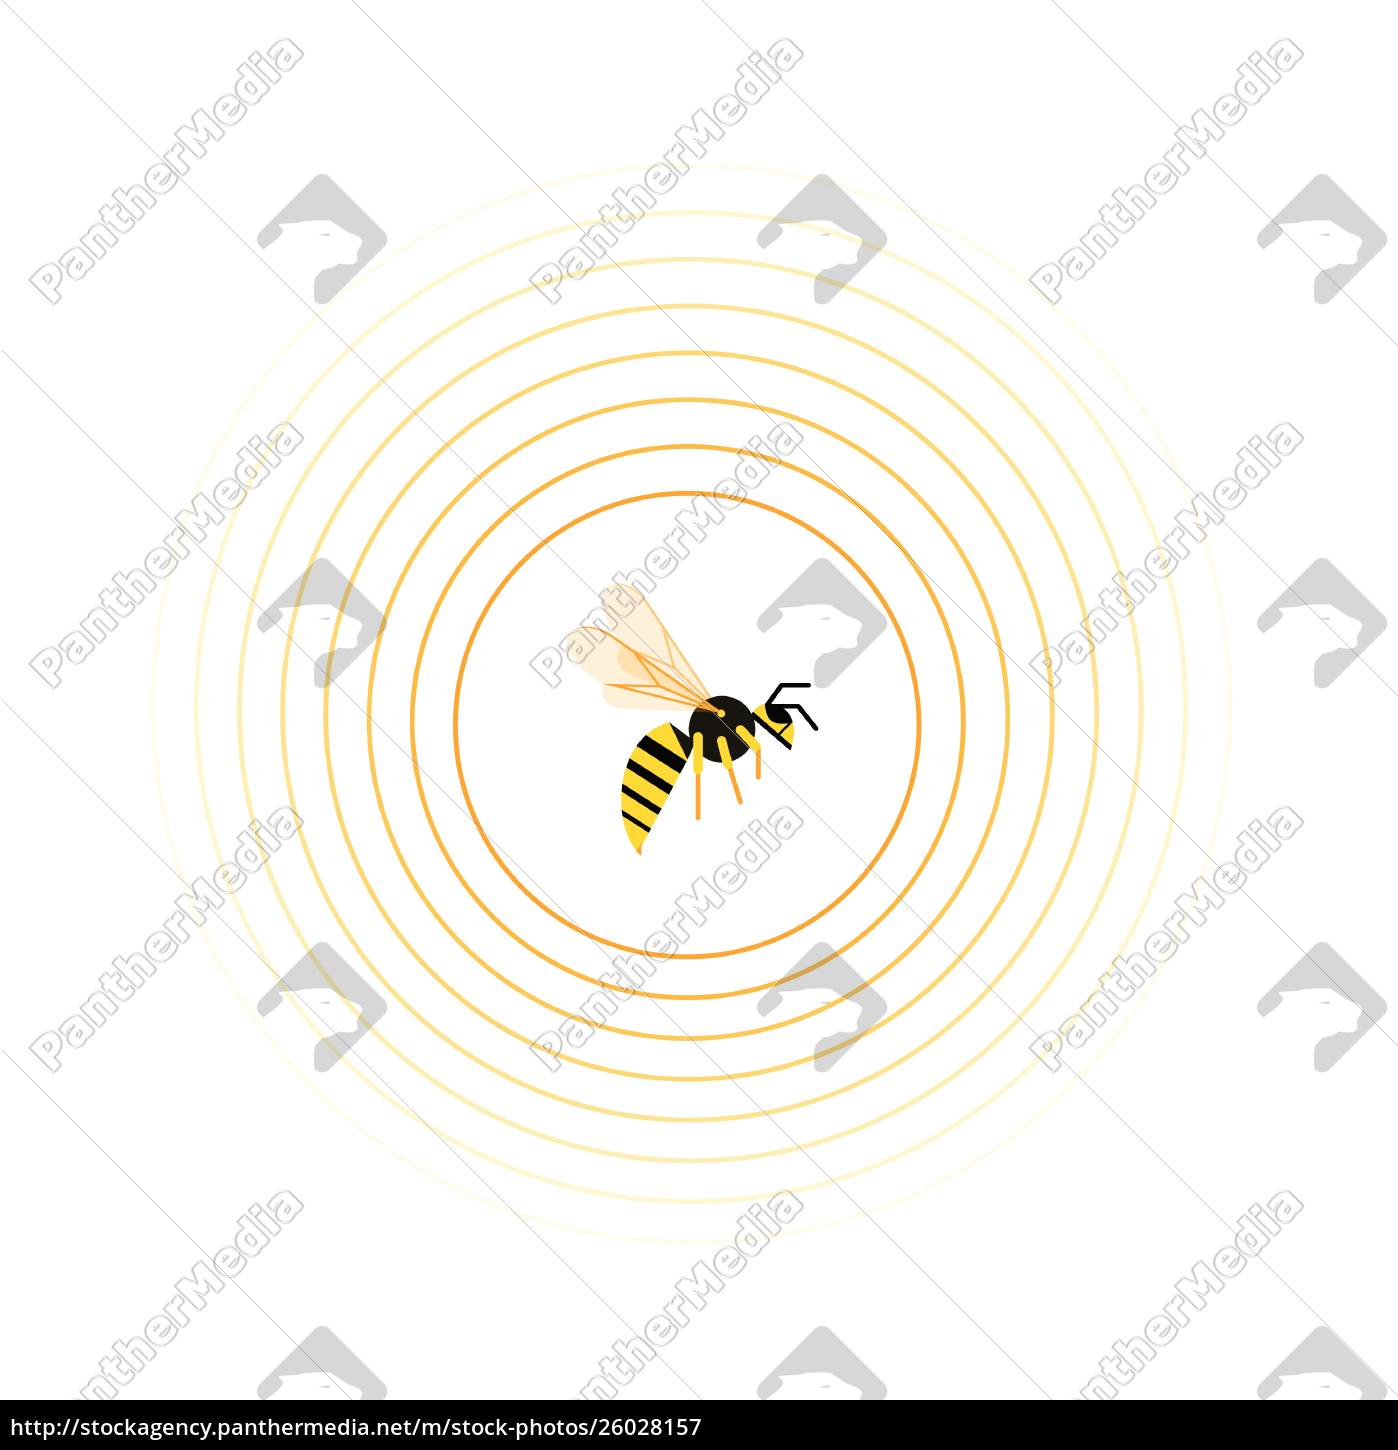 wasp, inside, circle, pattern - 26028157